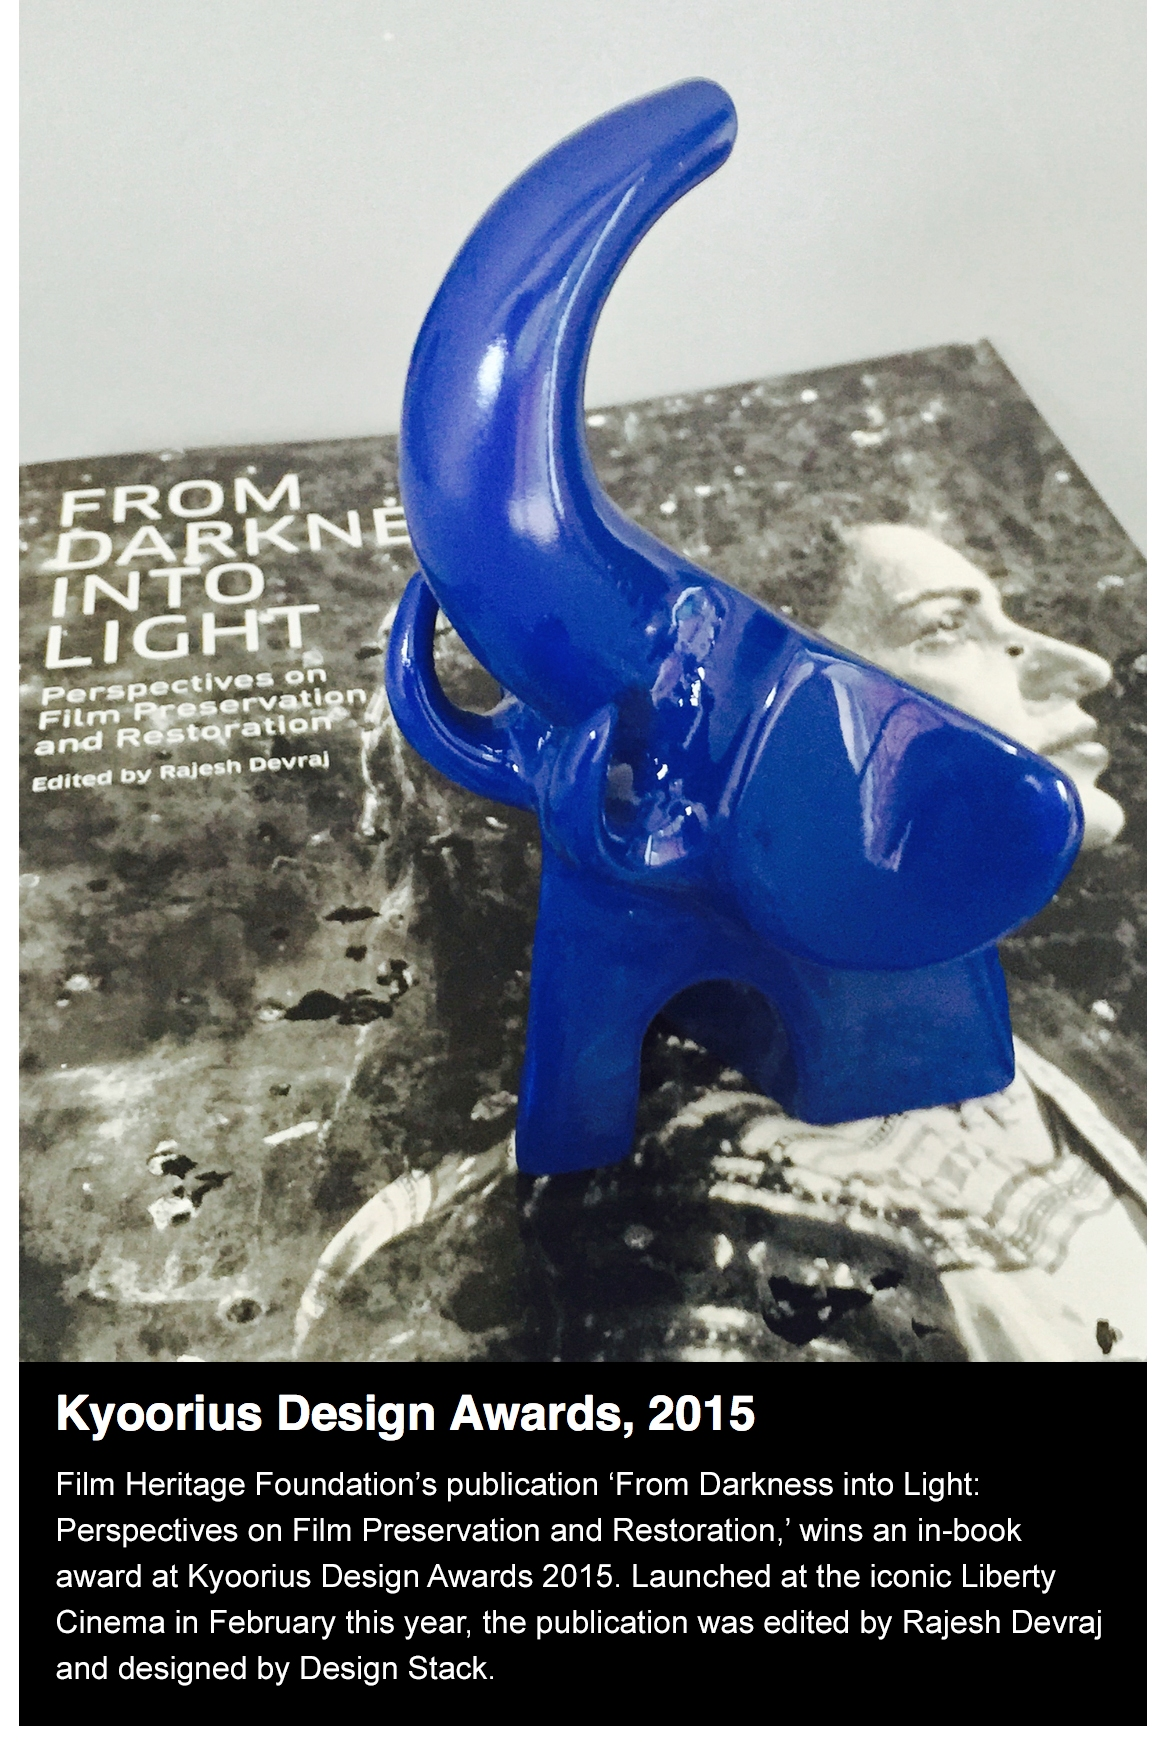 Kyoorius Design Awards, 2015